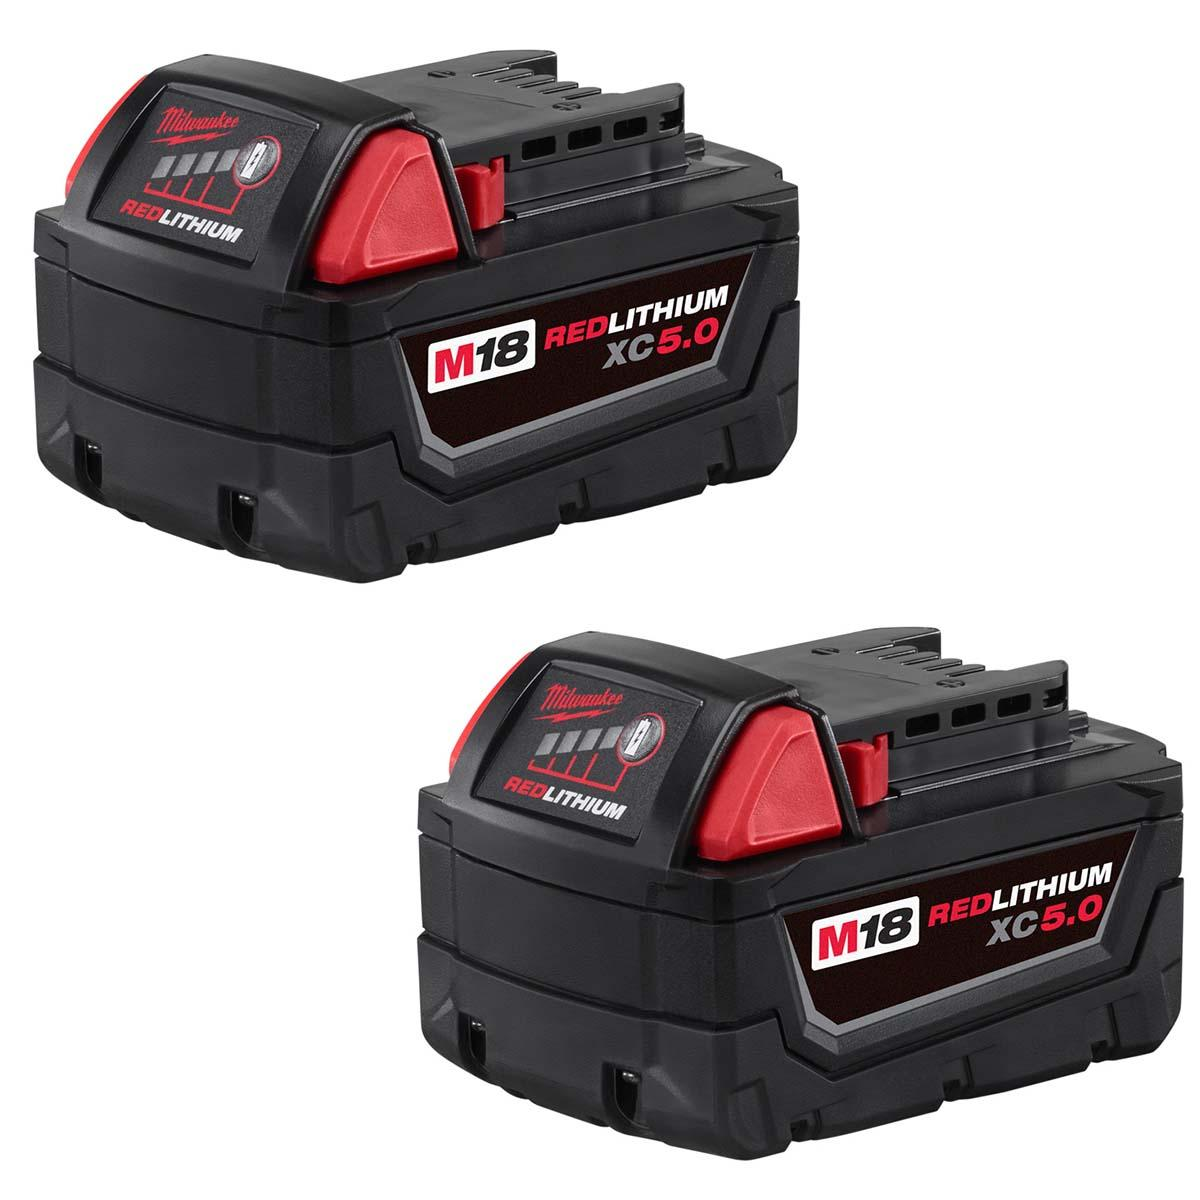 M18 REDLITHIUM XC5.0 Extended Capacity Battery Two Pack